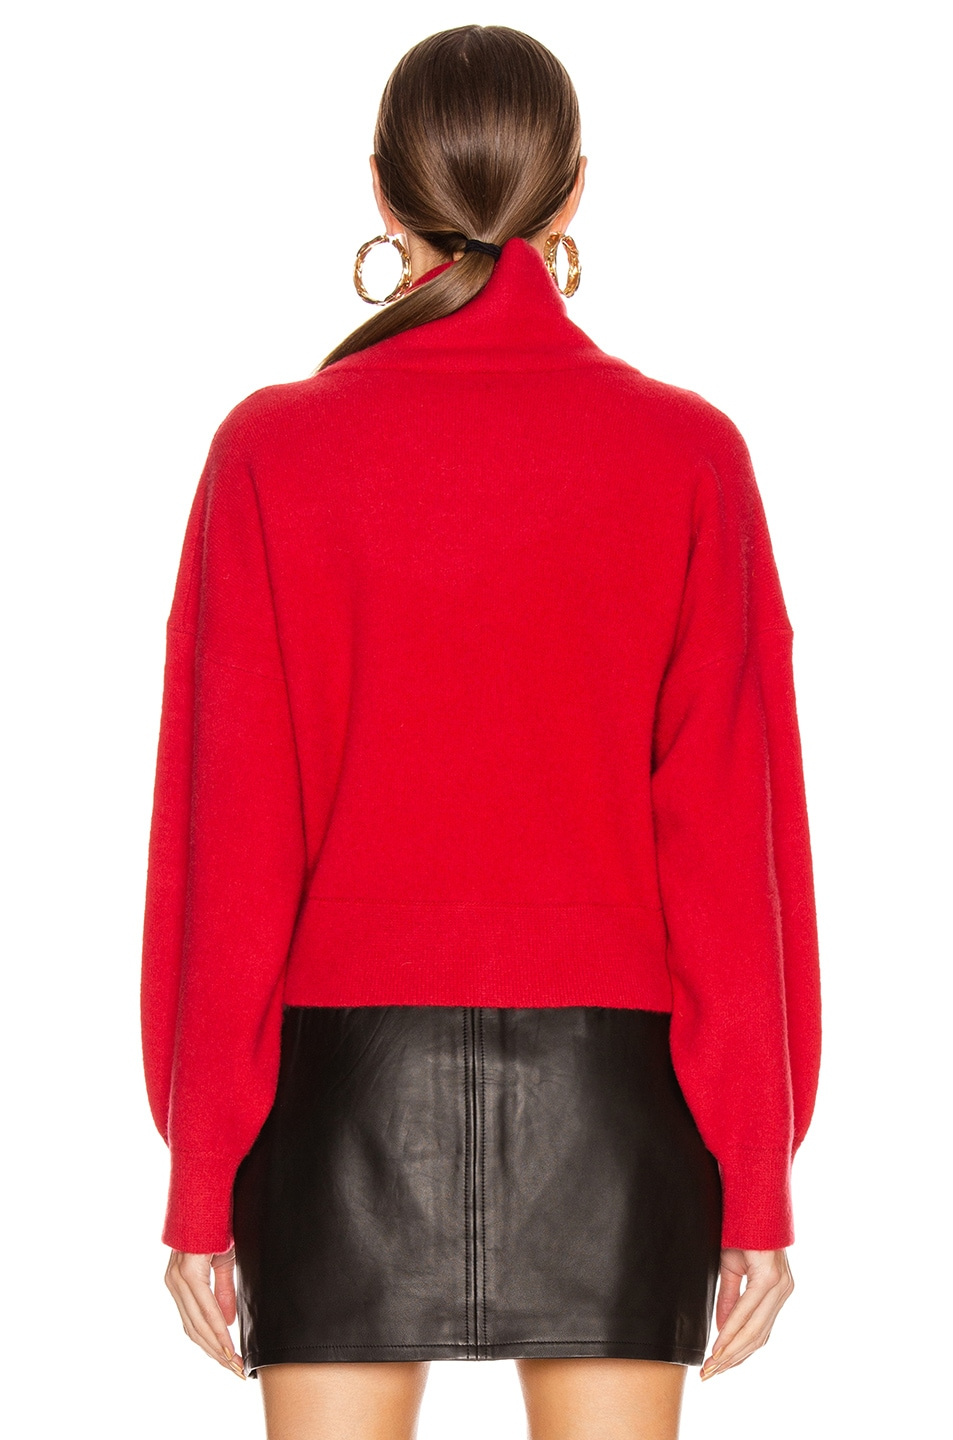 Image 3 of Equipment Aixenne Turtleneck Sweater in Rio Red